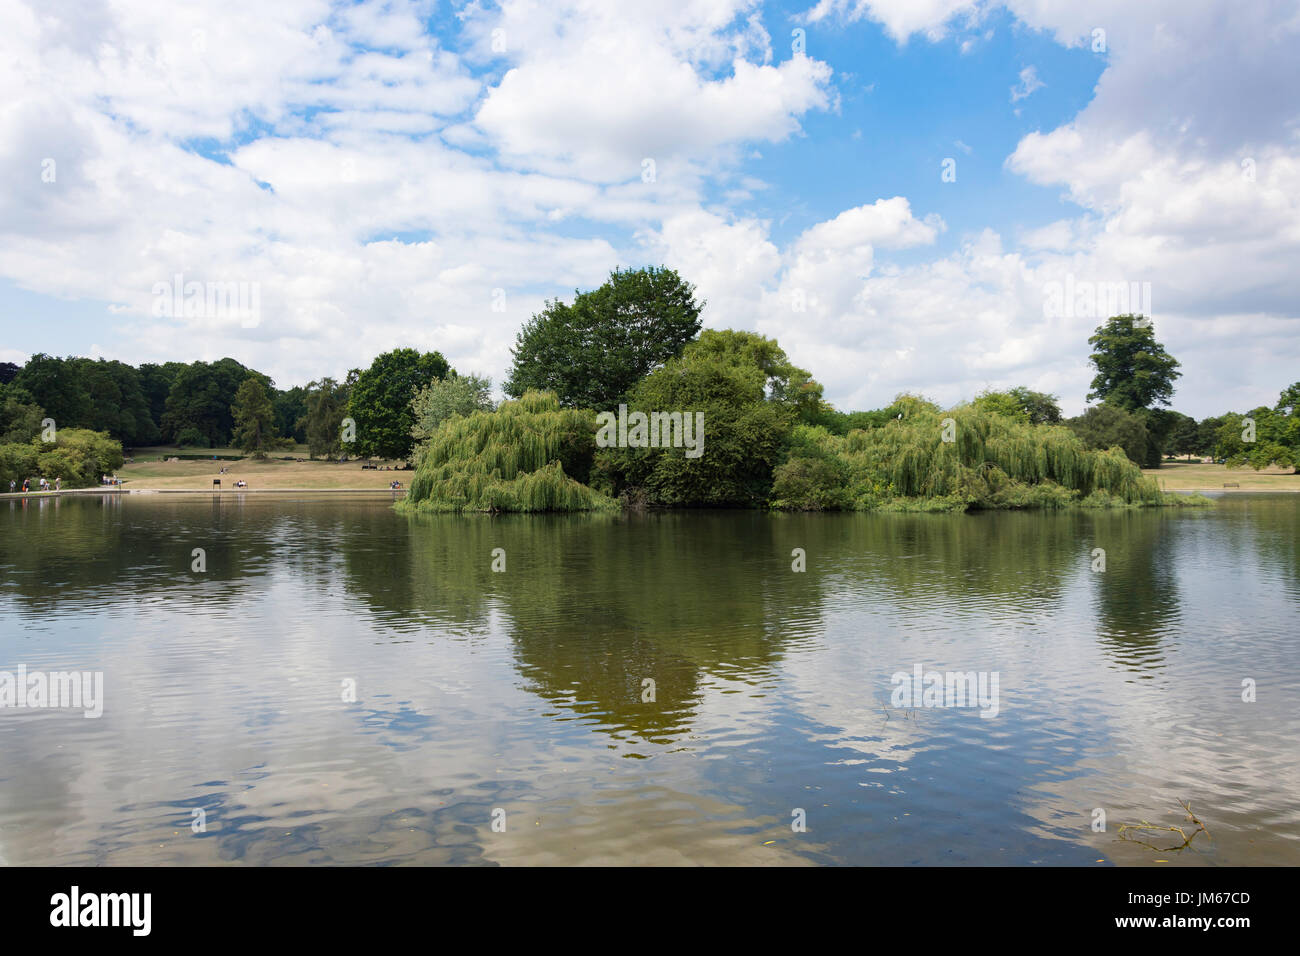 Lake and Heron Island in Verulamium Park, St.Albans, Hertfordshire, England, United Kingdom Stock Photo